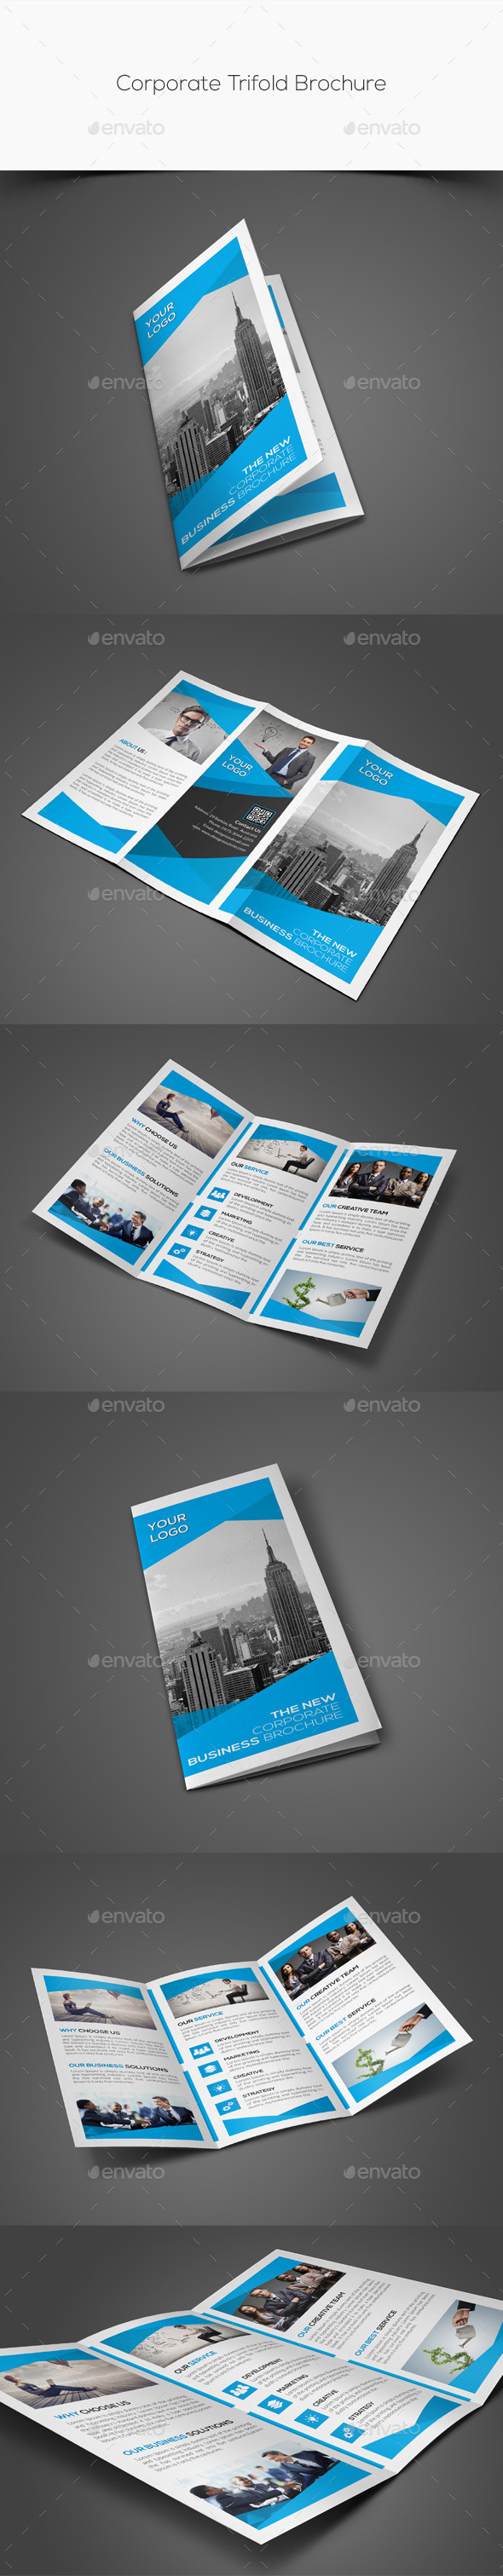 GraphicRiver Corporate Trifold Brochure 11554101